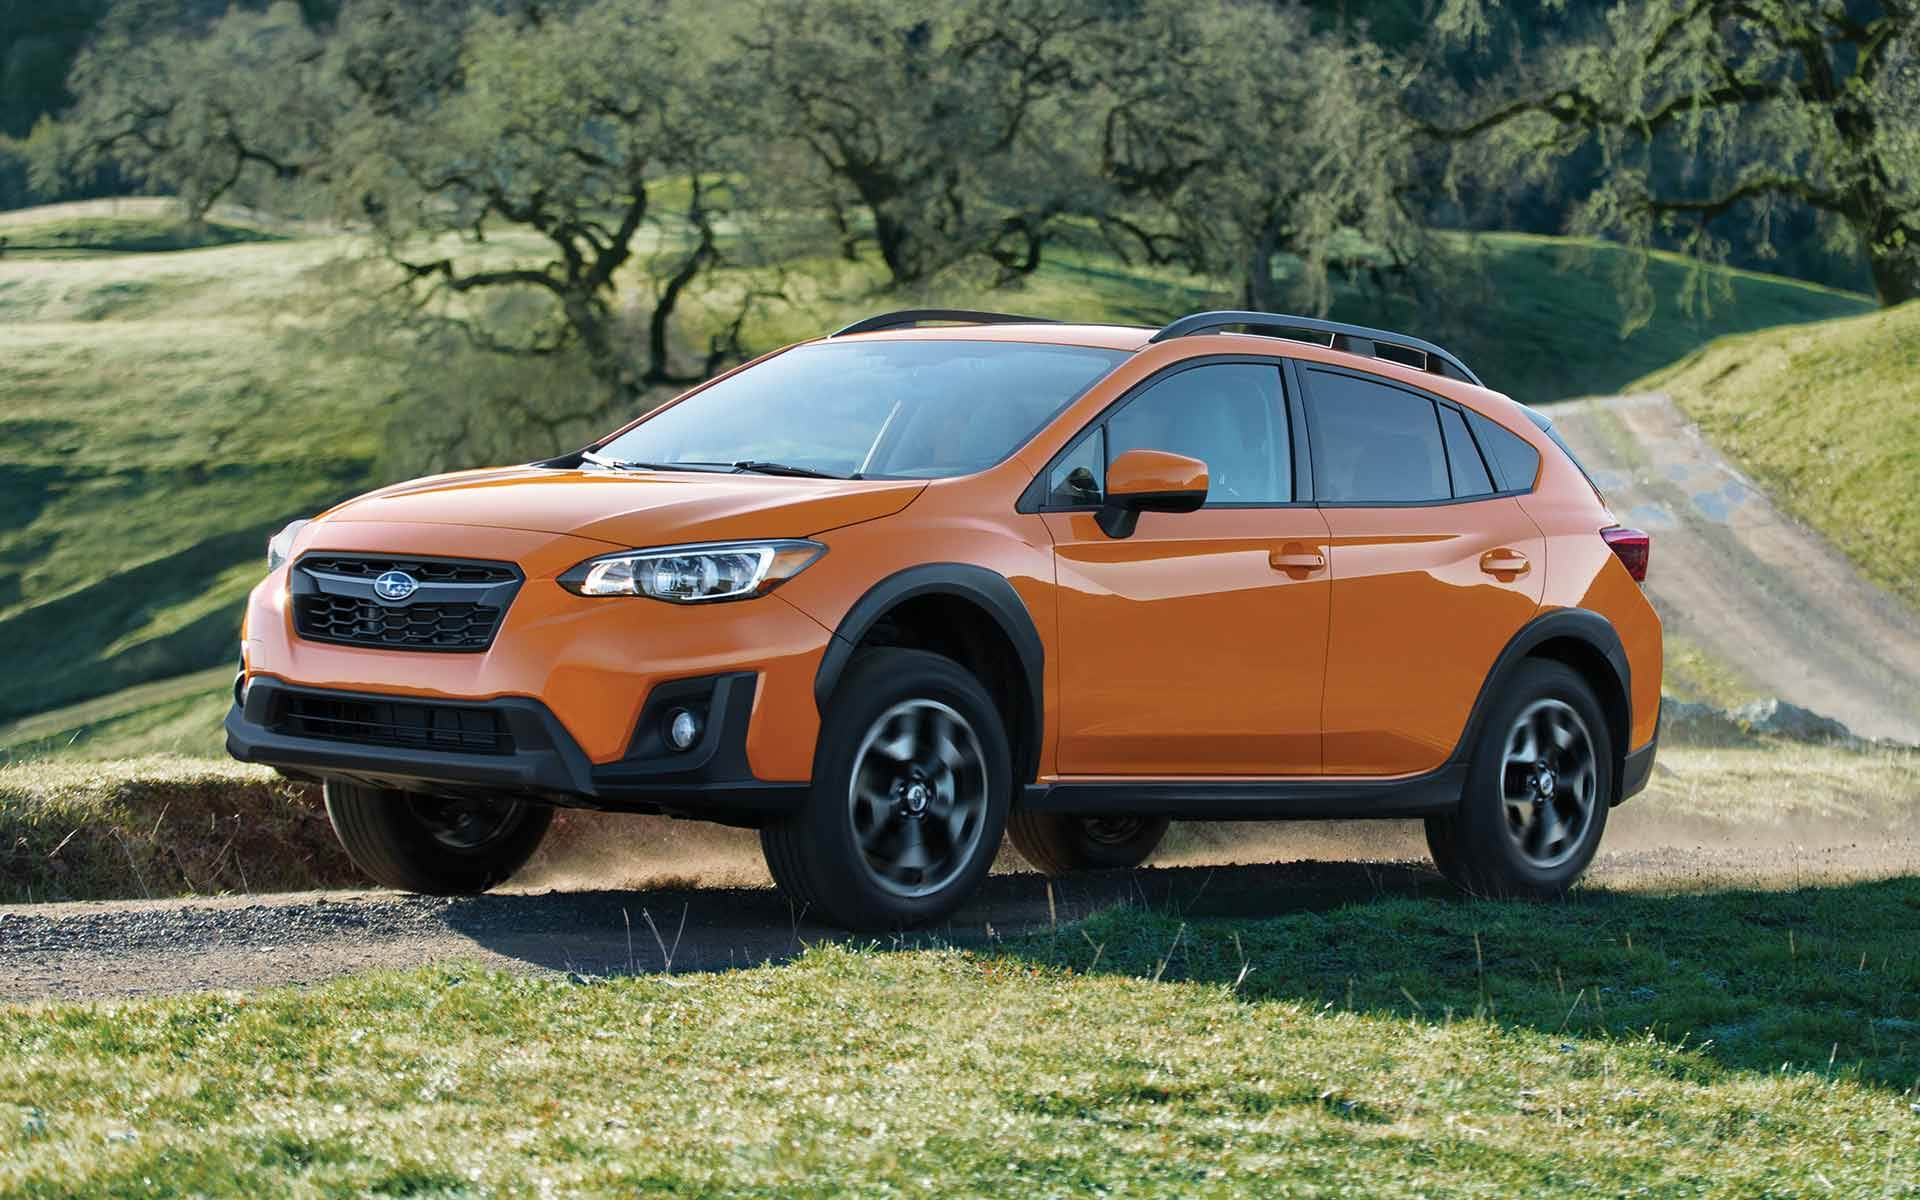 2018 subaru crosstrek vs 2018 honda hr v comparison review. Black Bedroom Furniture Sets. Home Design Ideas